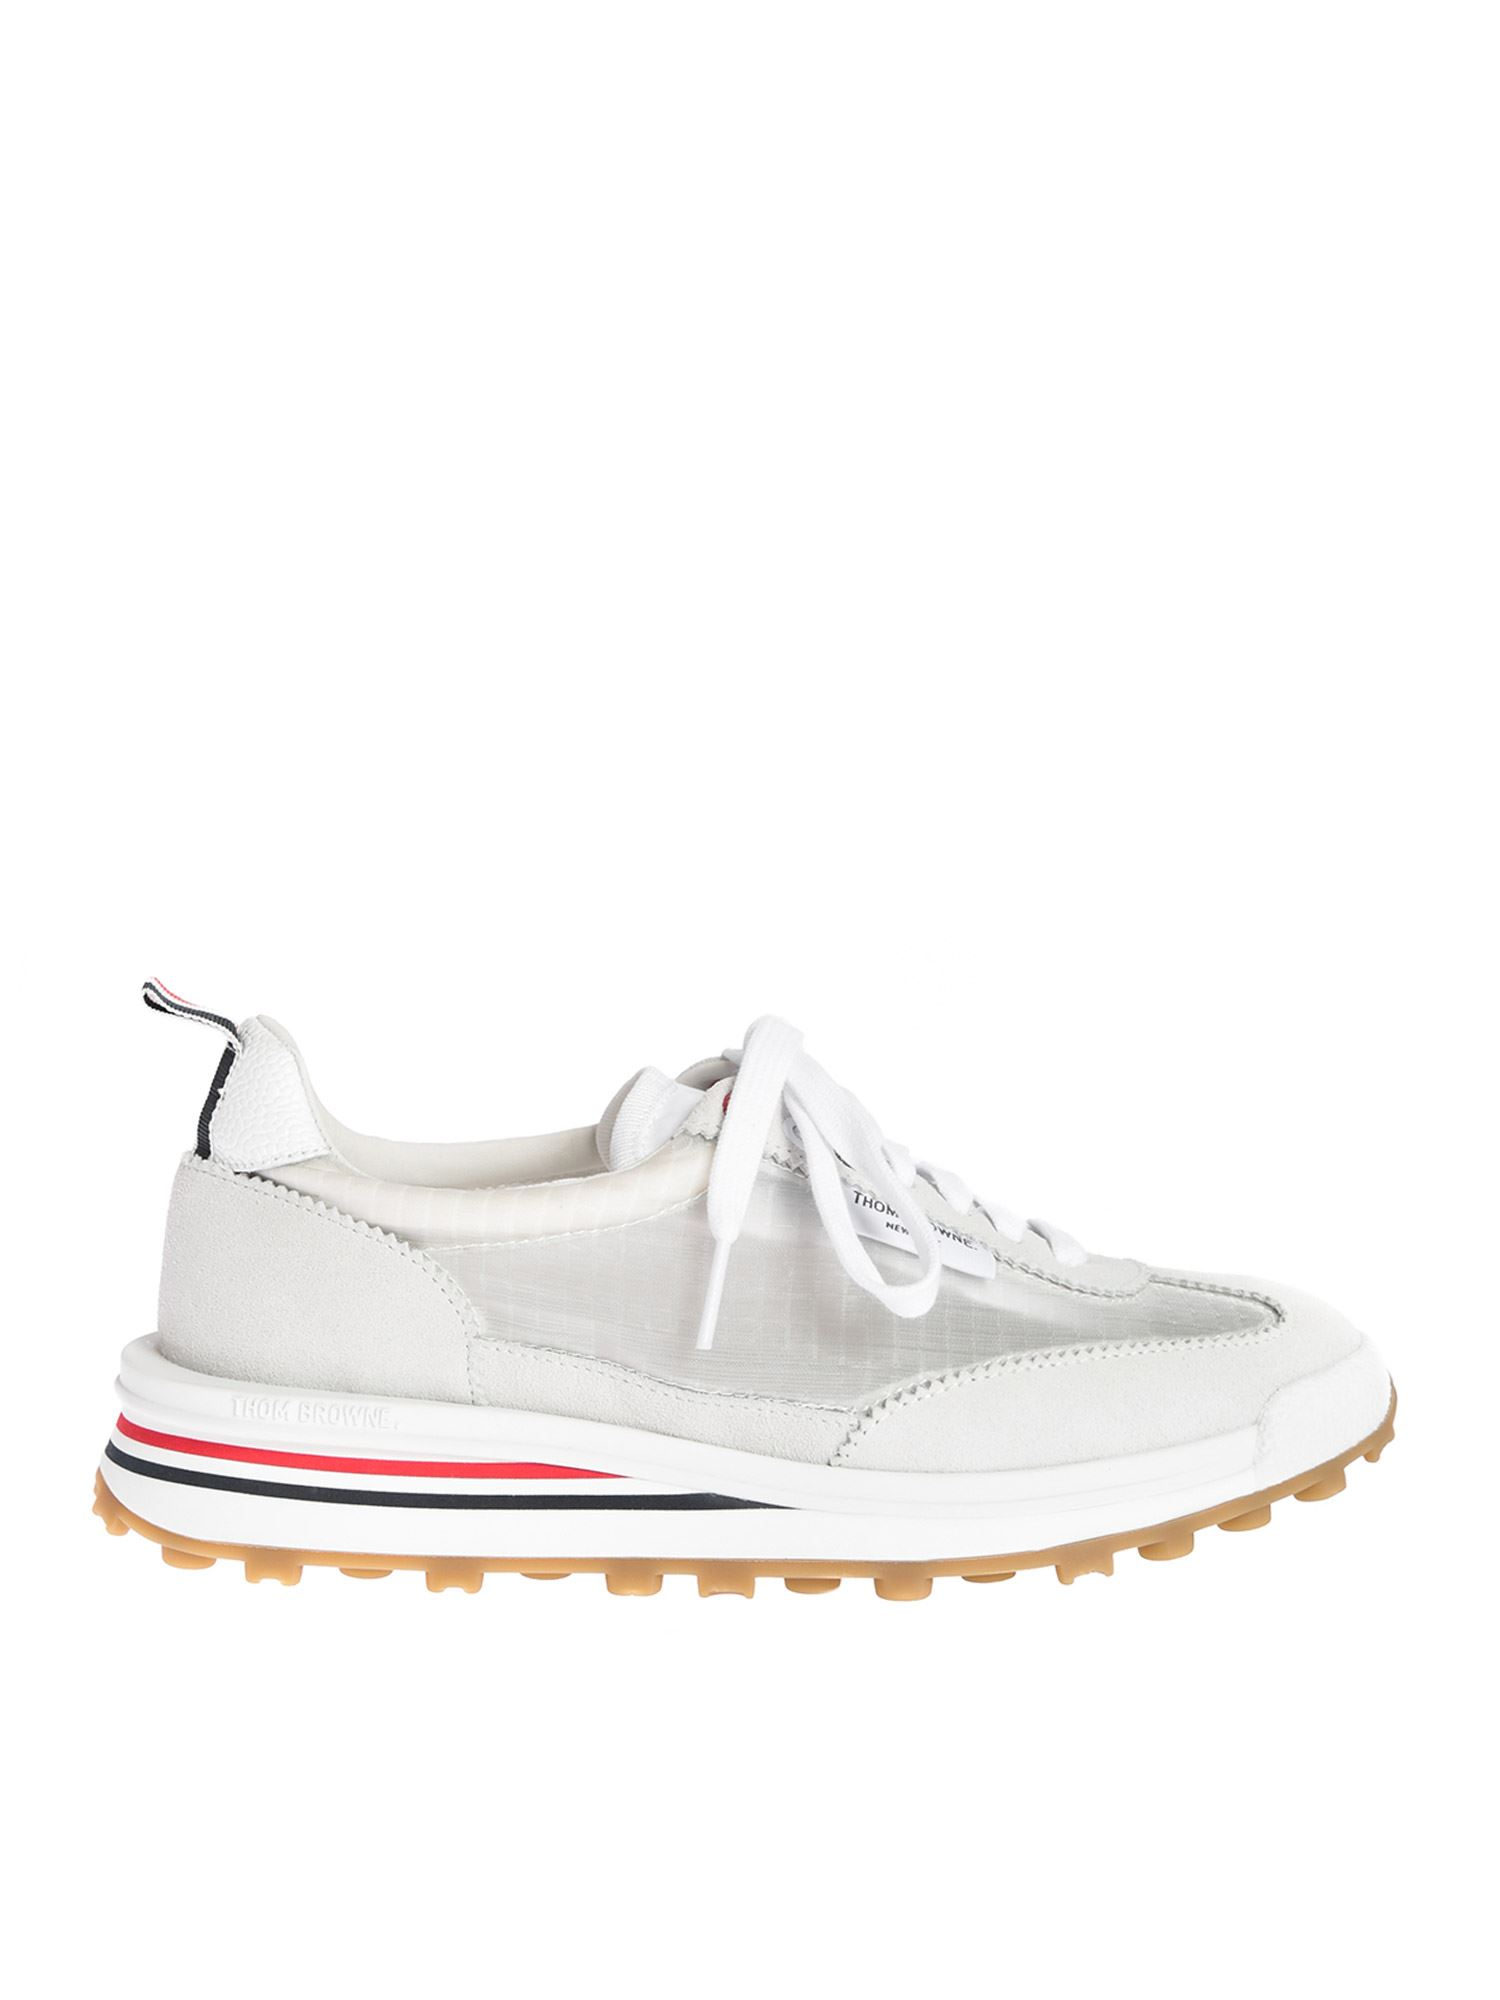 Thom Browne RIPSTOP RUNNERS IN WHITE